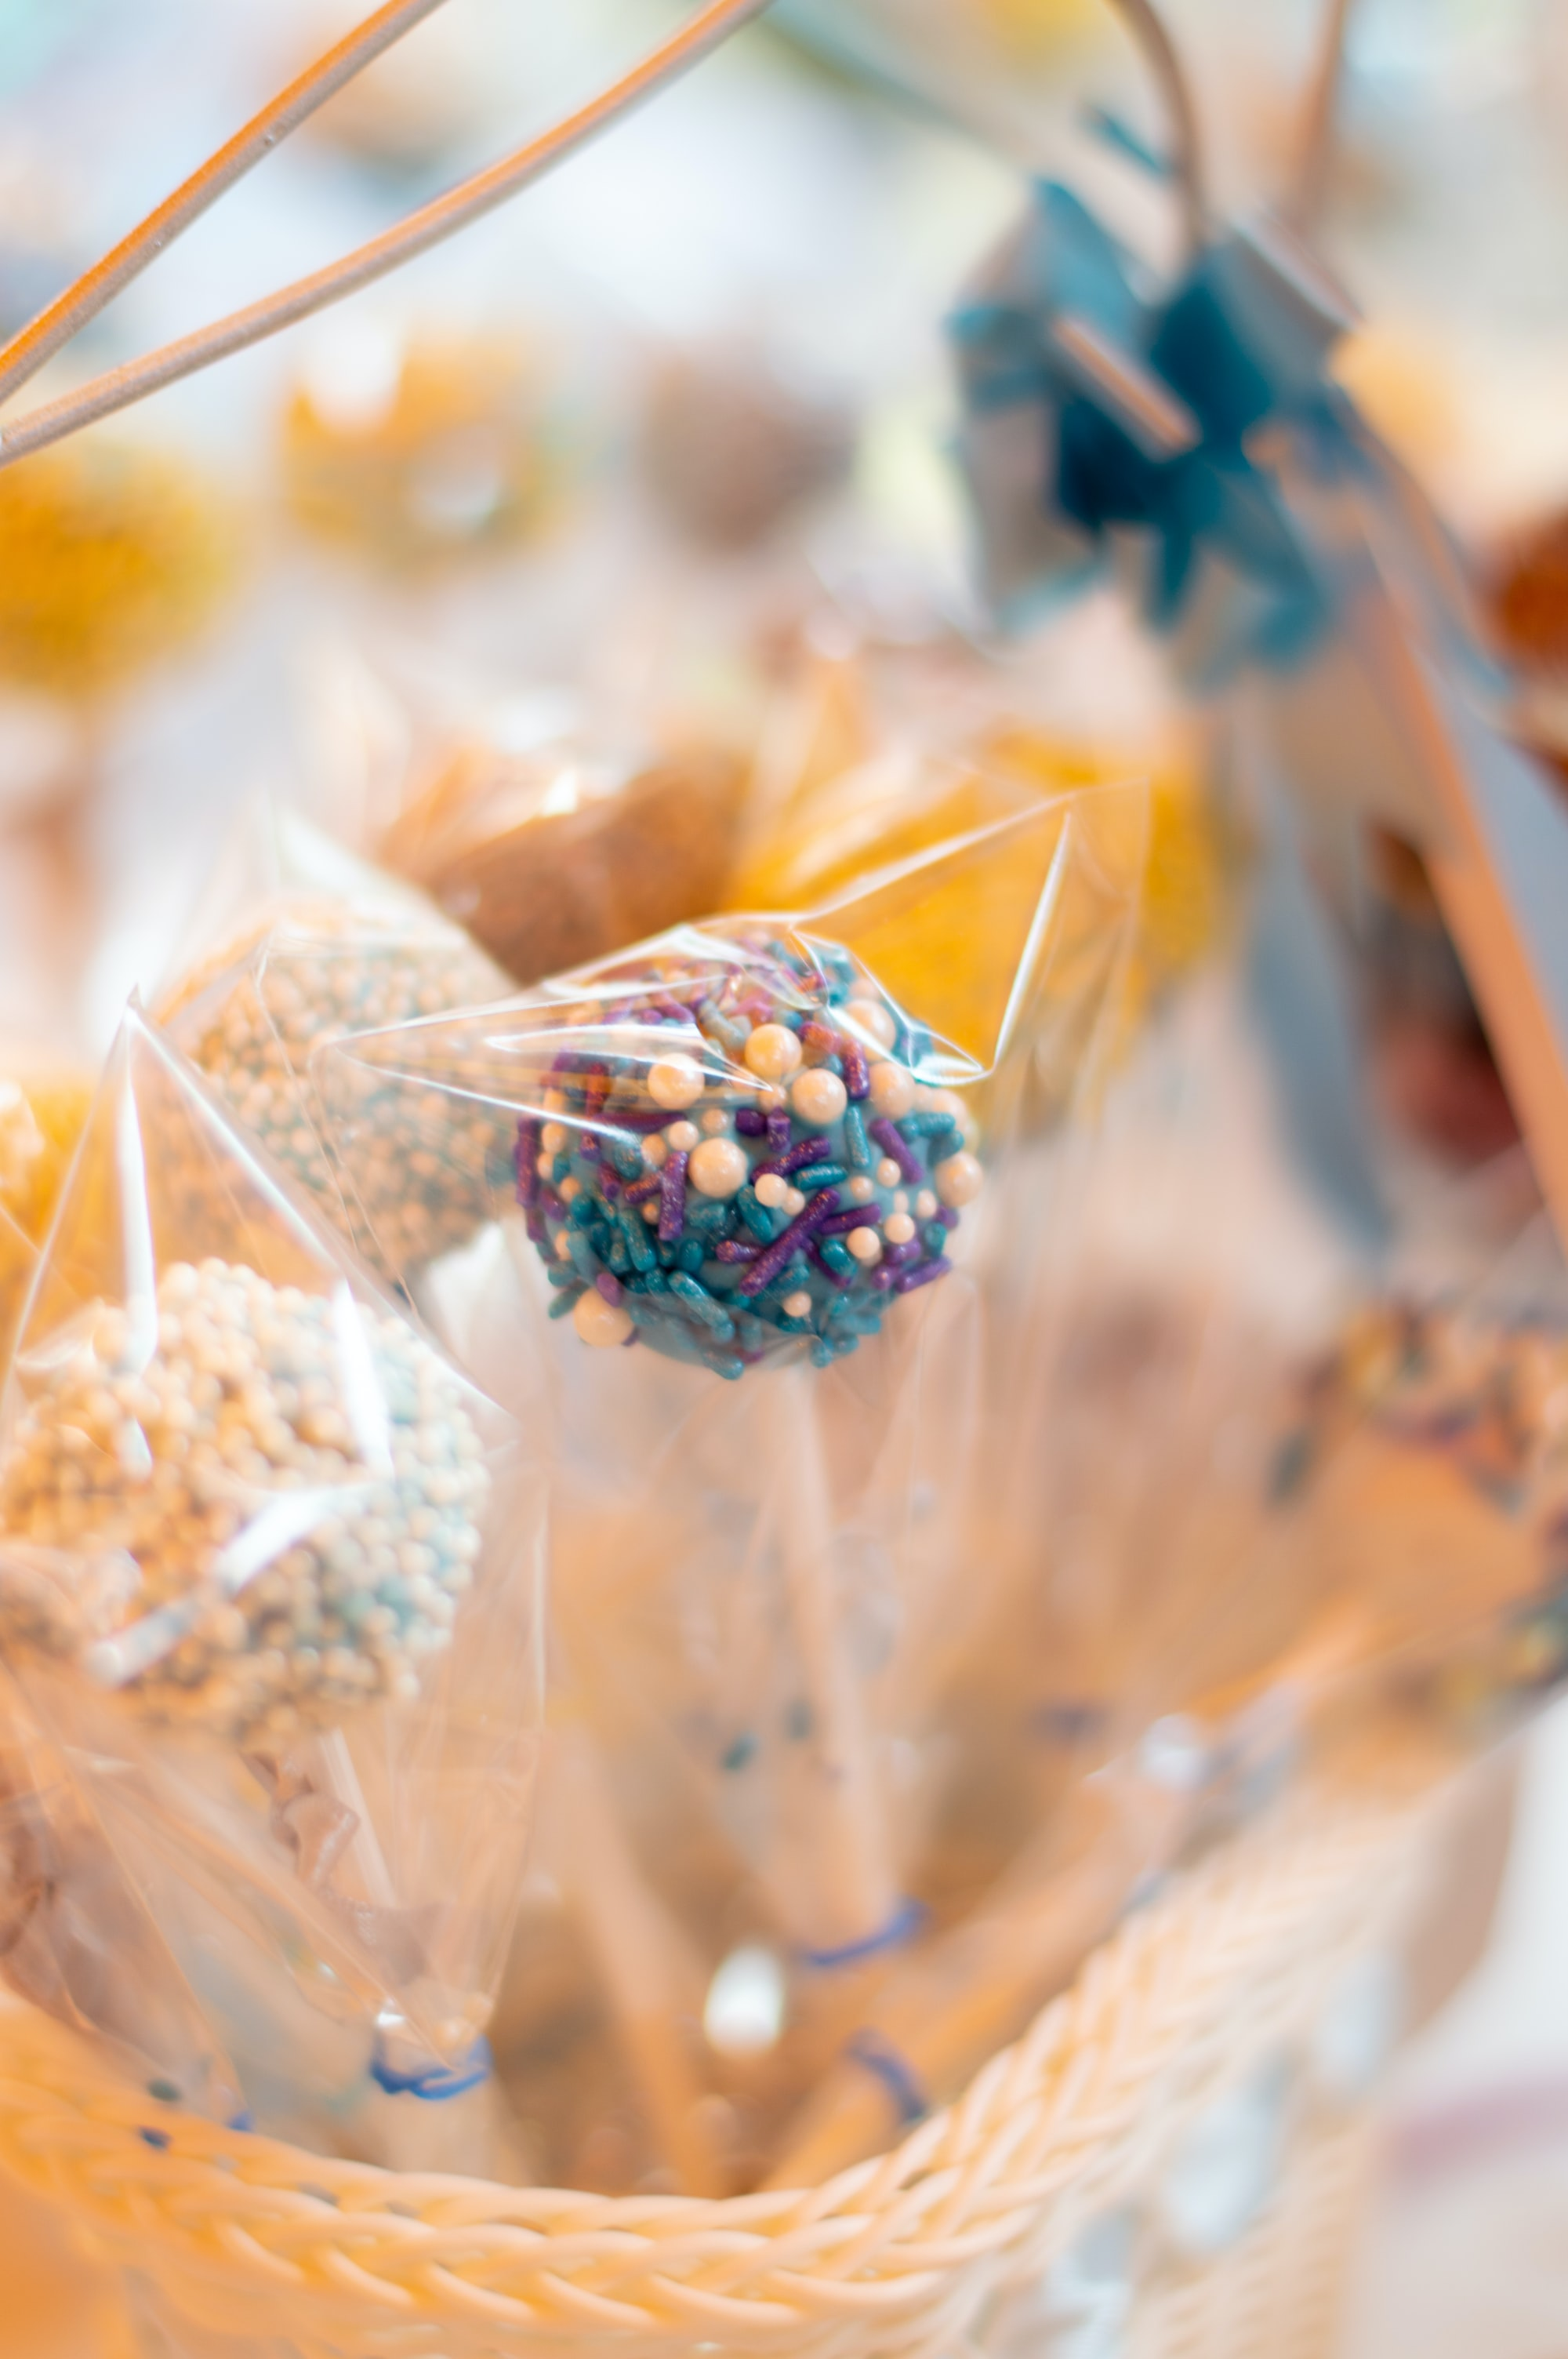 This image/photo of cake pops were taking during a Baby Shower in Mexico during the Summer of 2018.  The table had many different Mexican treats, candies and fruits which were very delicious.